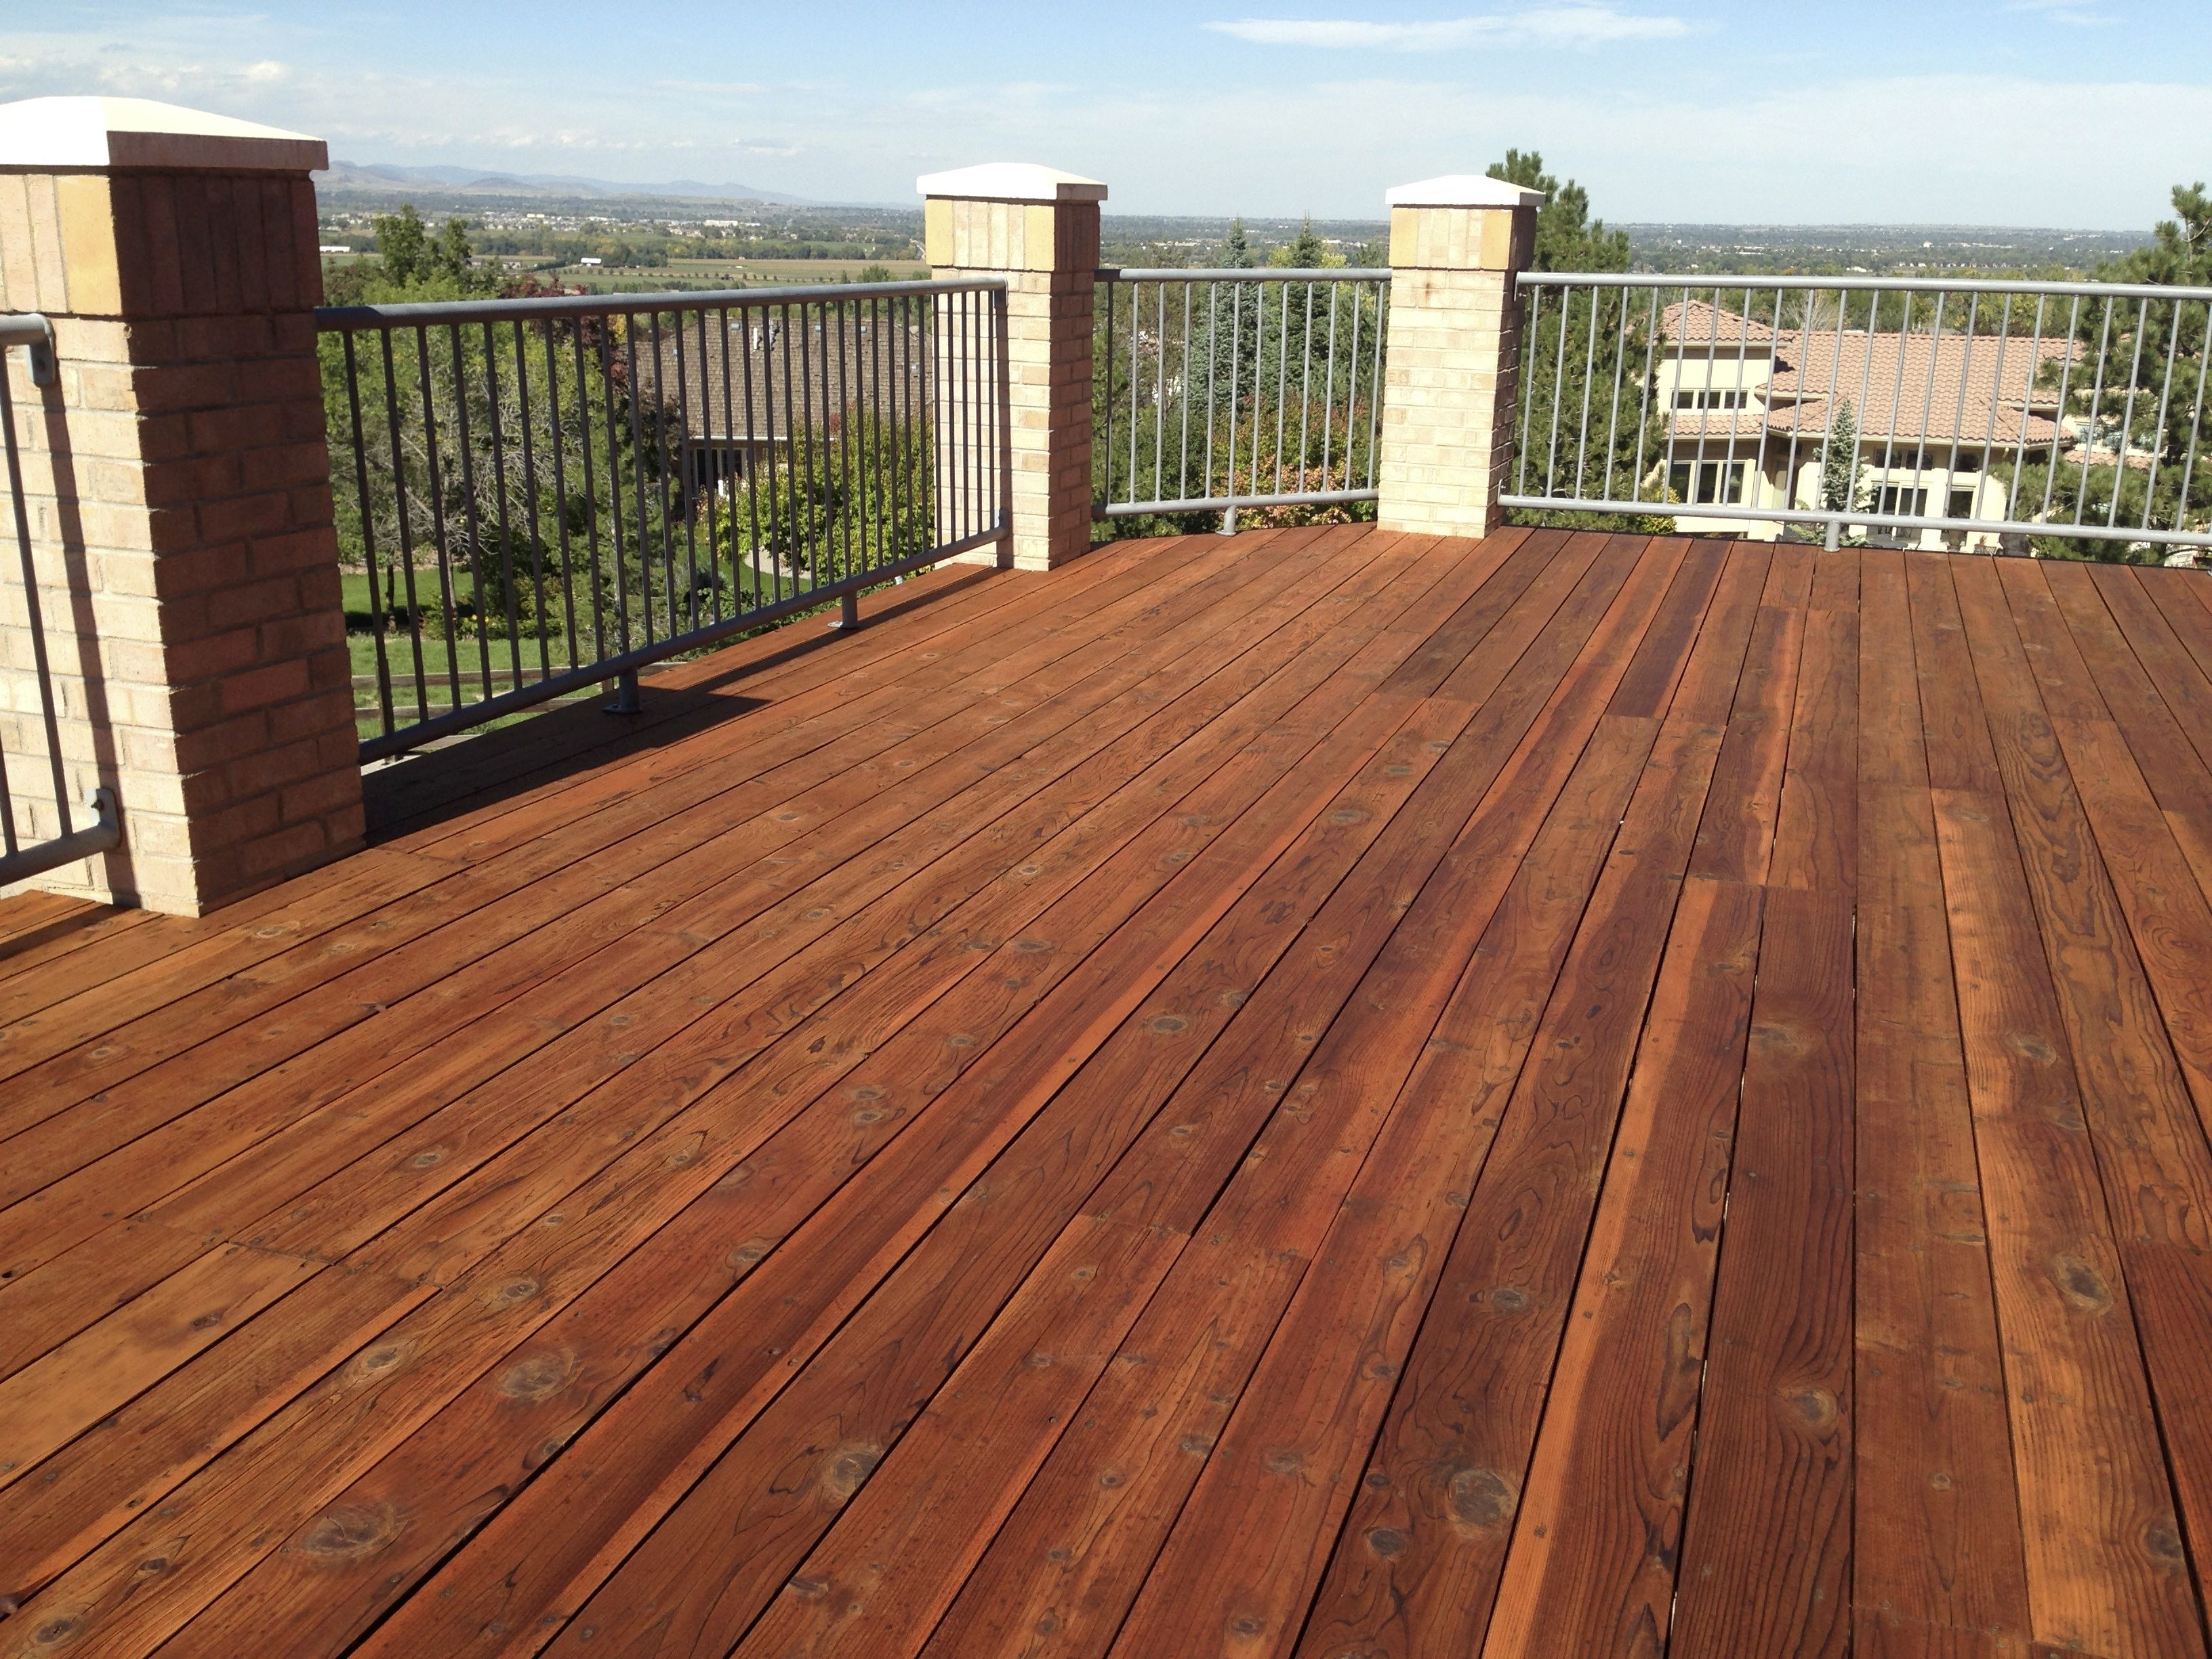 Boodge Deck Stain In Redwood Staining Deck Deck Stain Colors Best Deck Stain